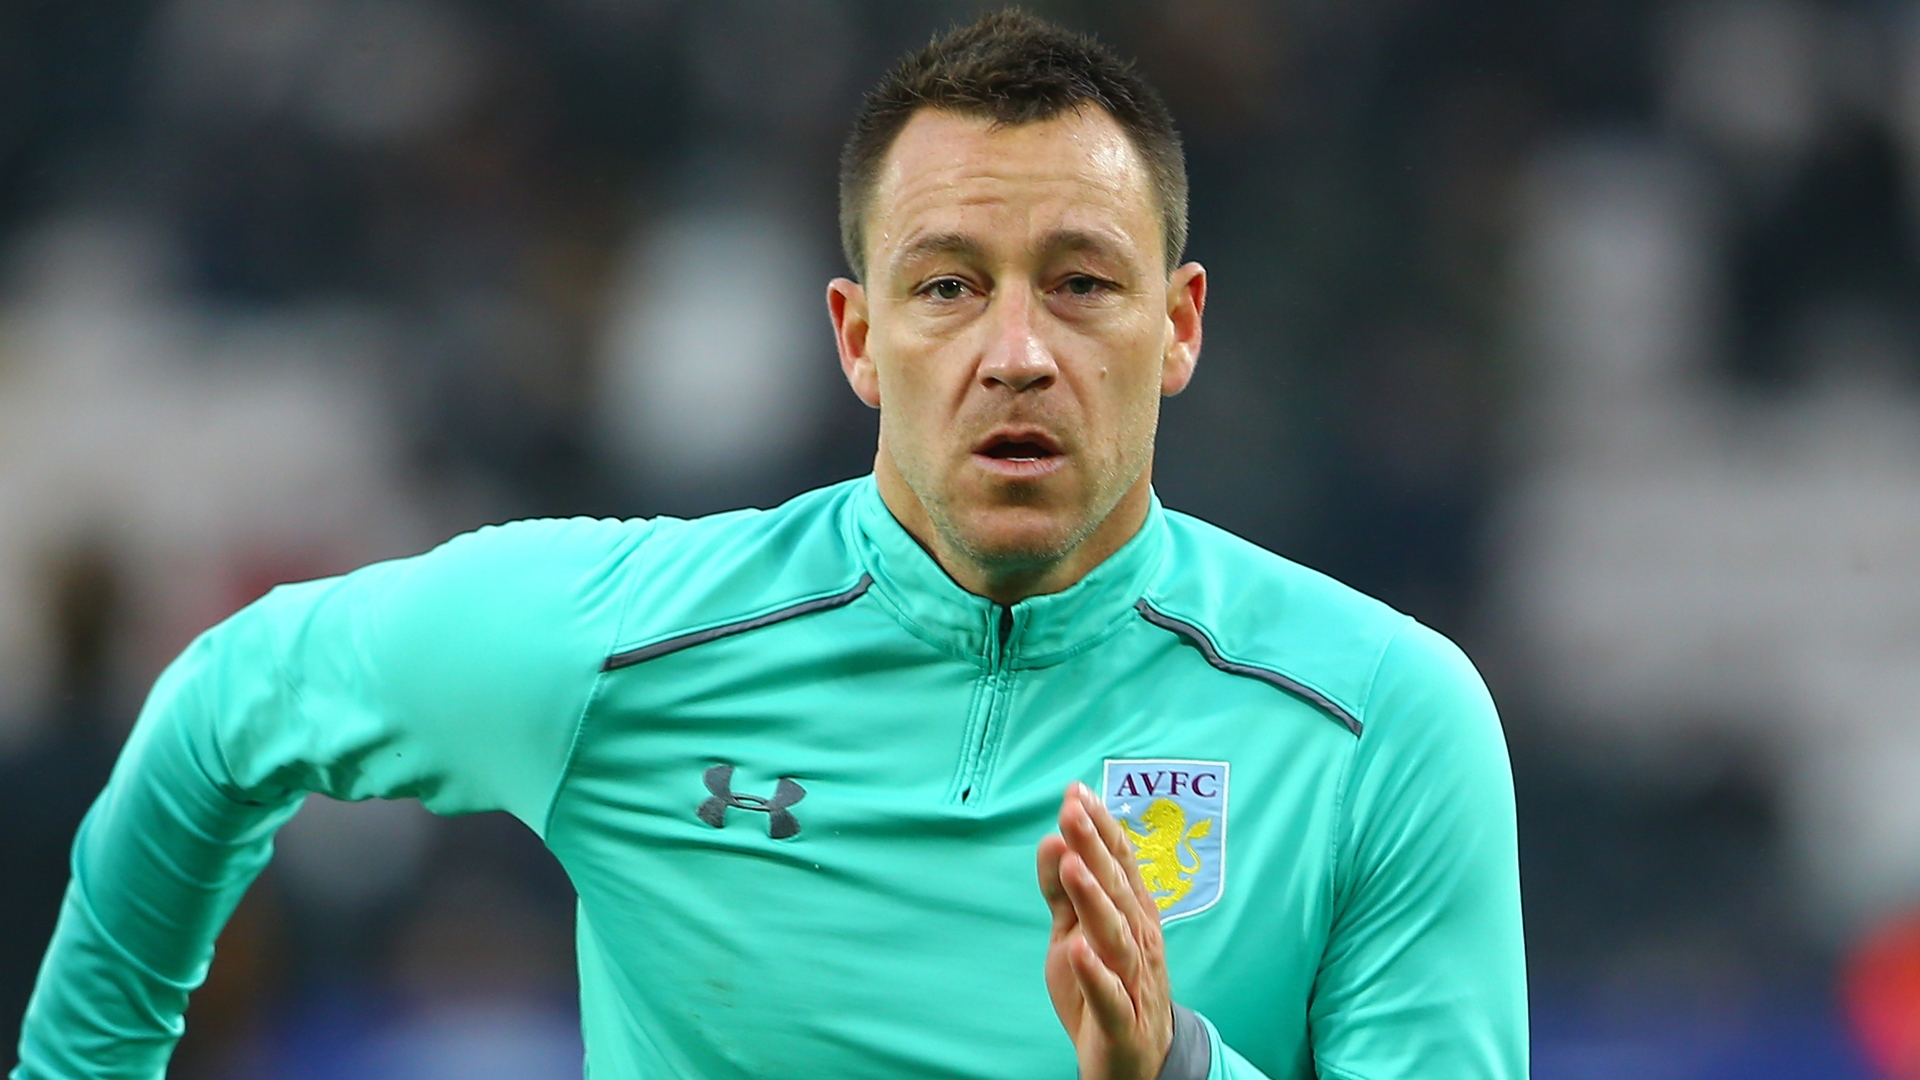 Chelsea boss Maurizio Sarri open to John Terry return in coaching role